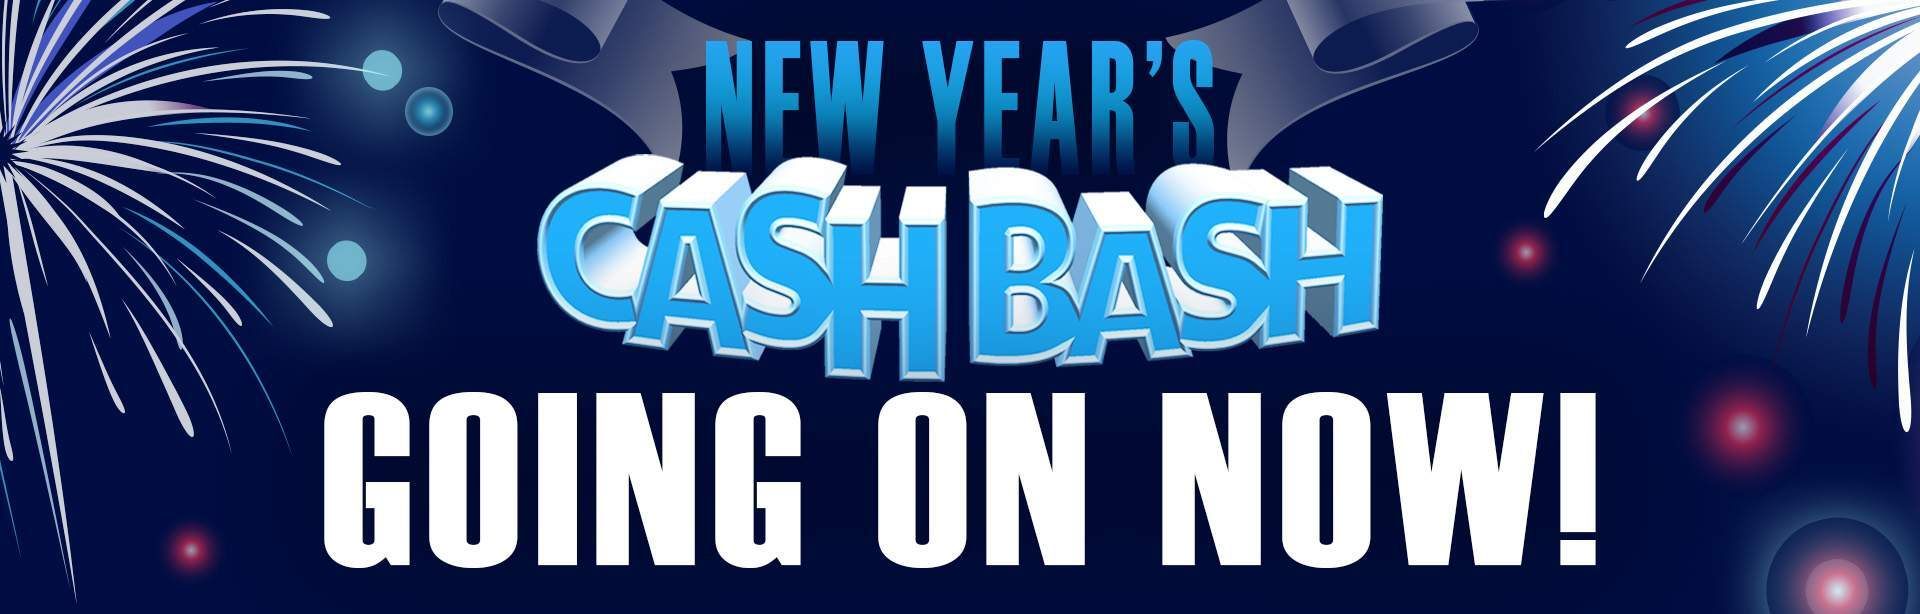 New Year's Cash Bash!